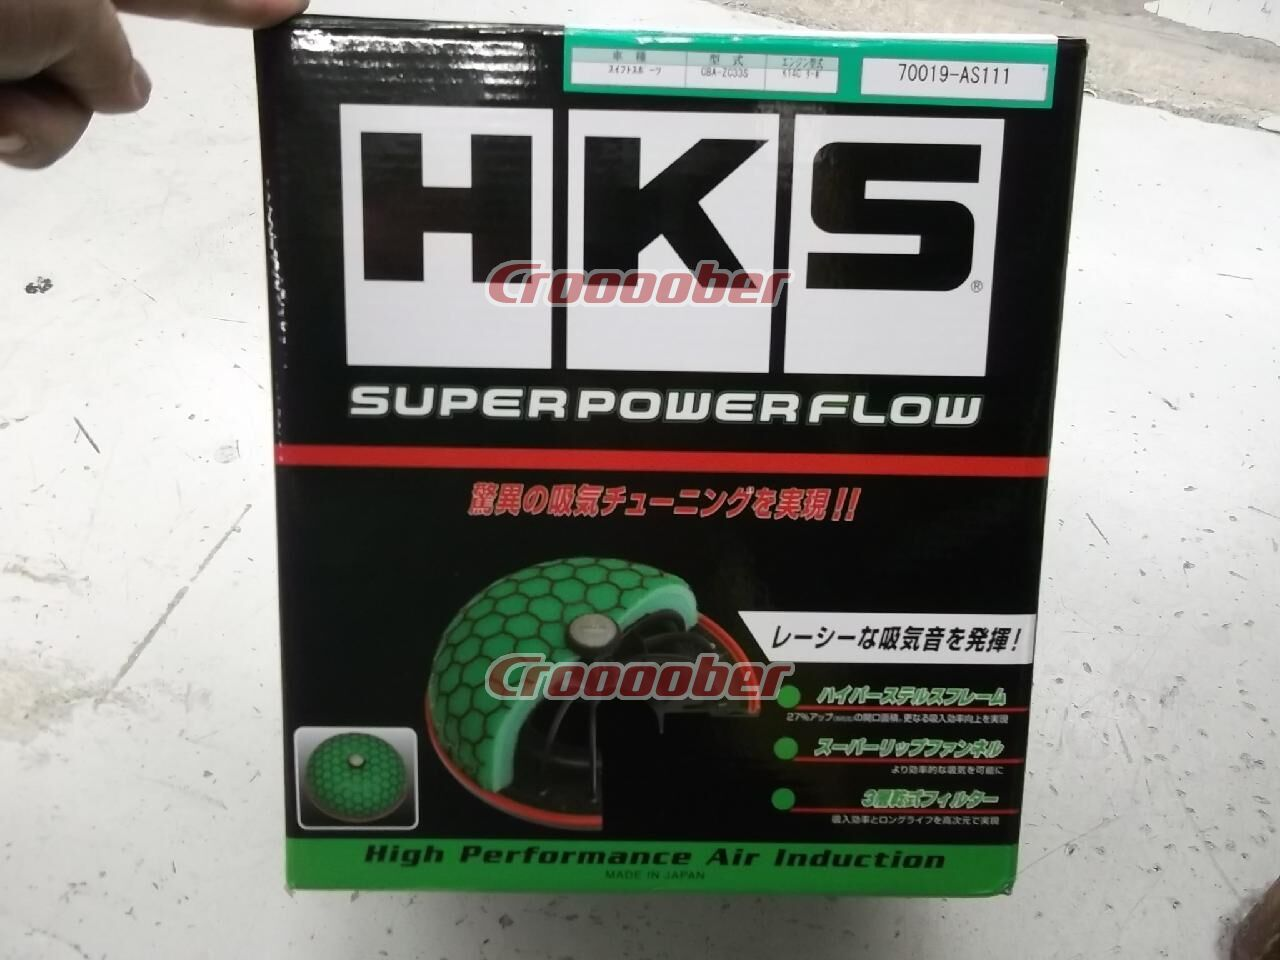 3617359d9 It Is Beautiful Article HKS Super Power Flow 70019 AS 111 | Air Filters ...